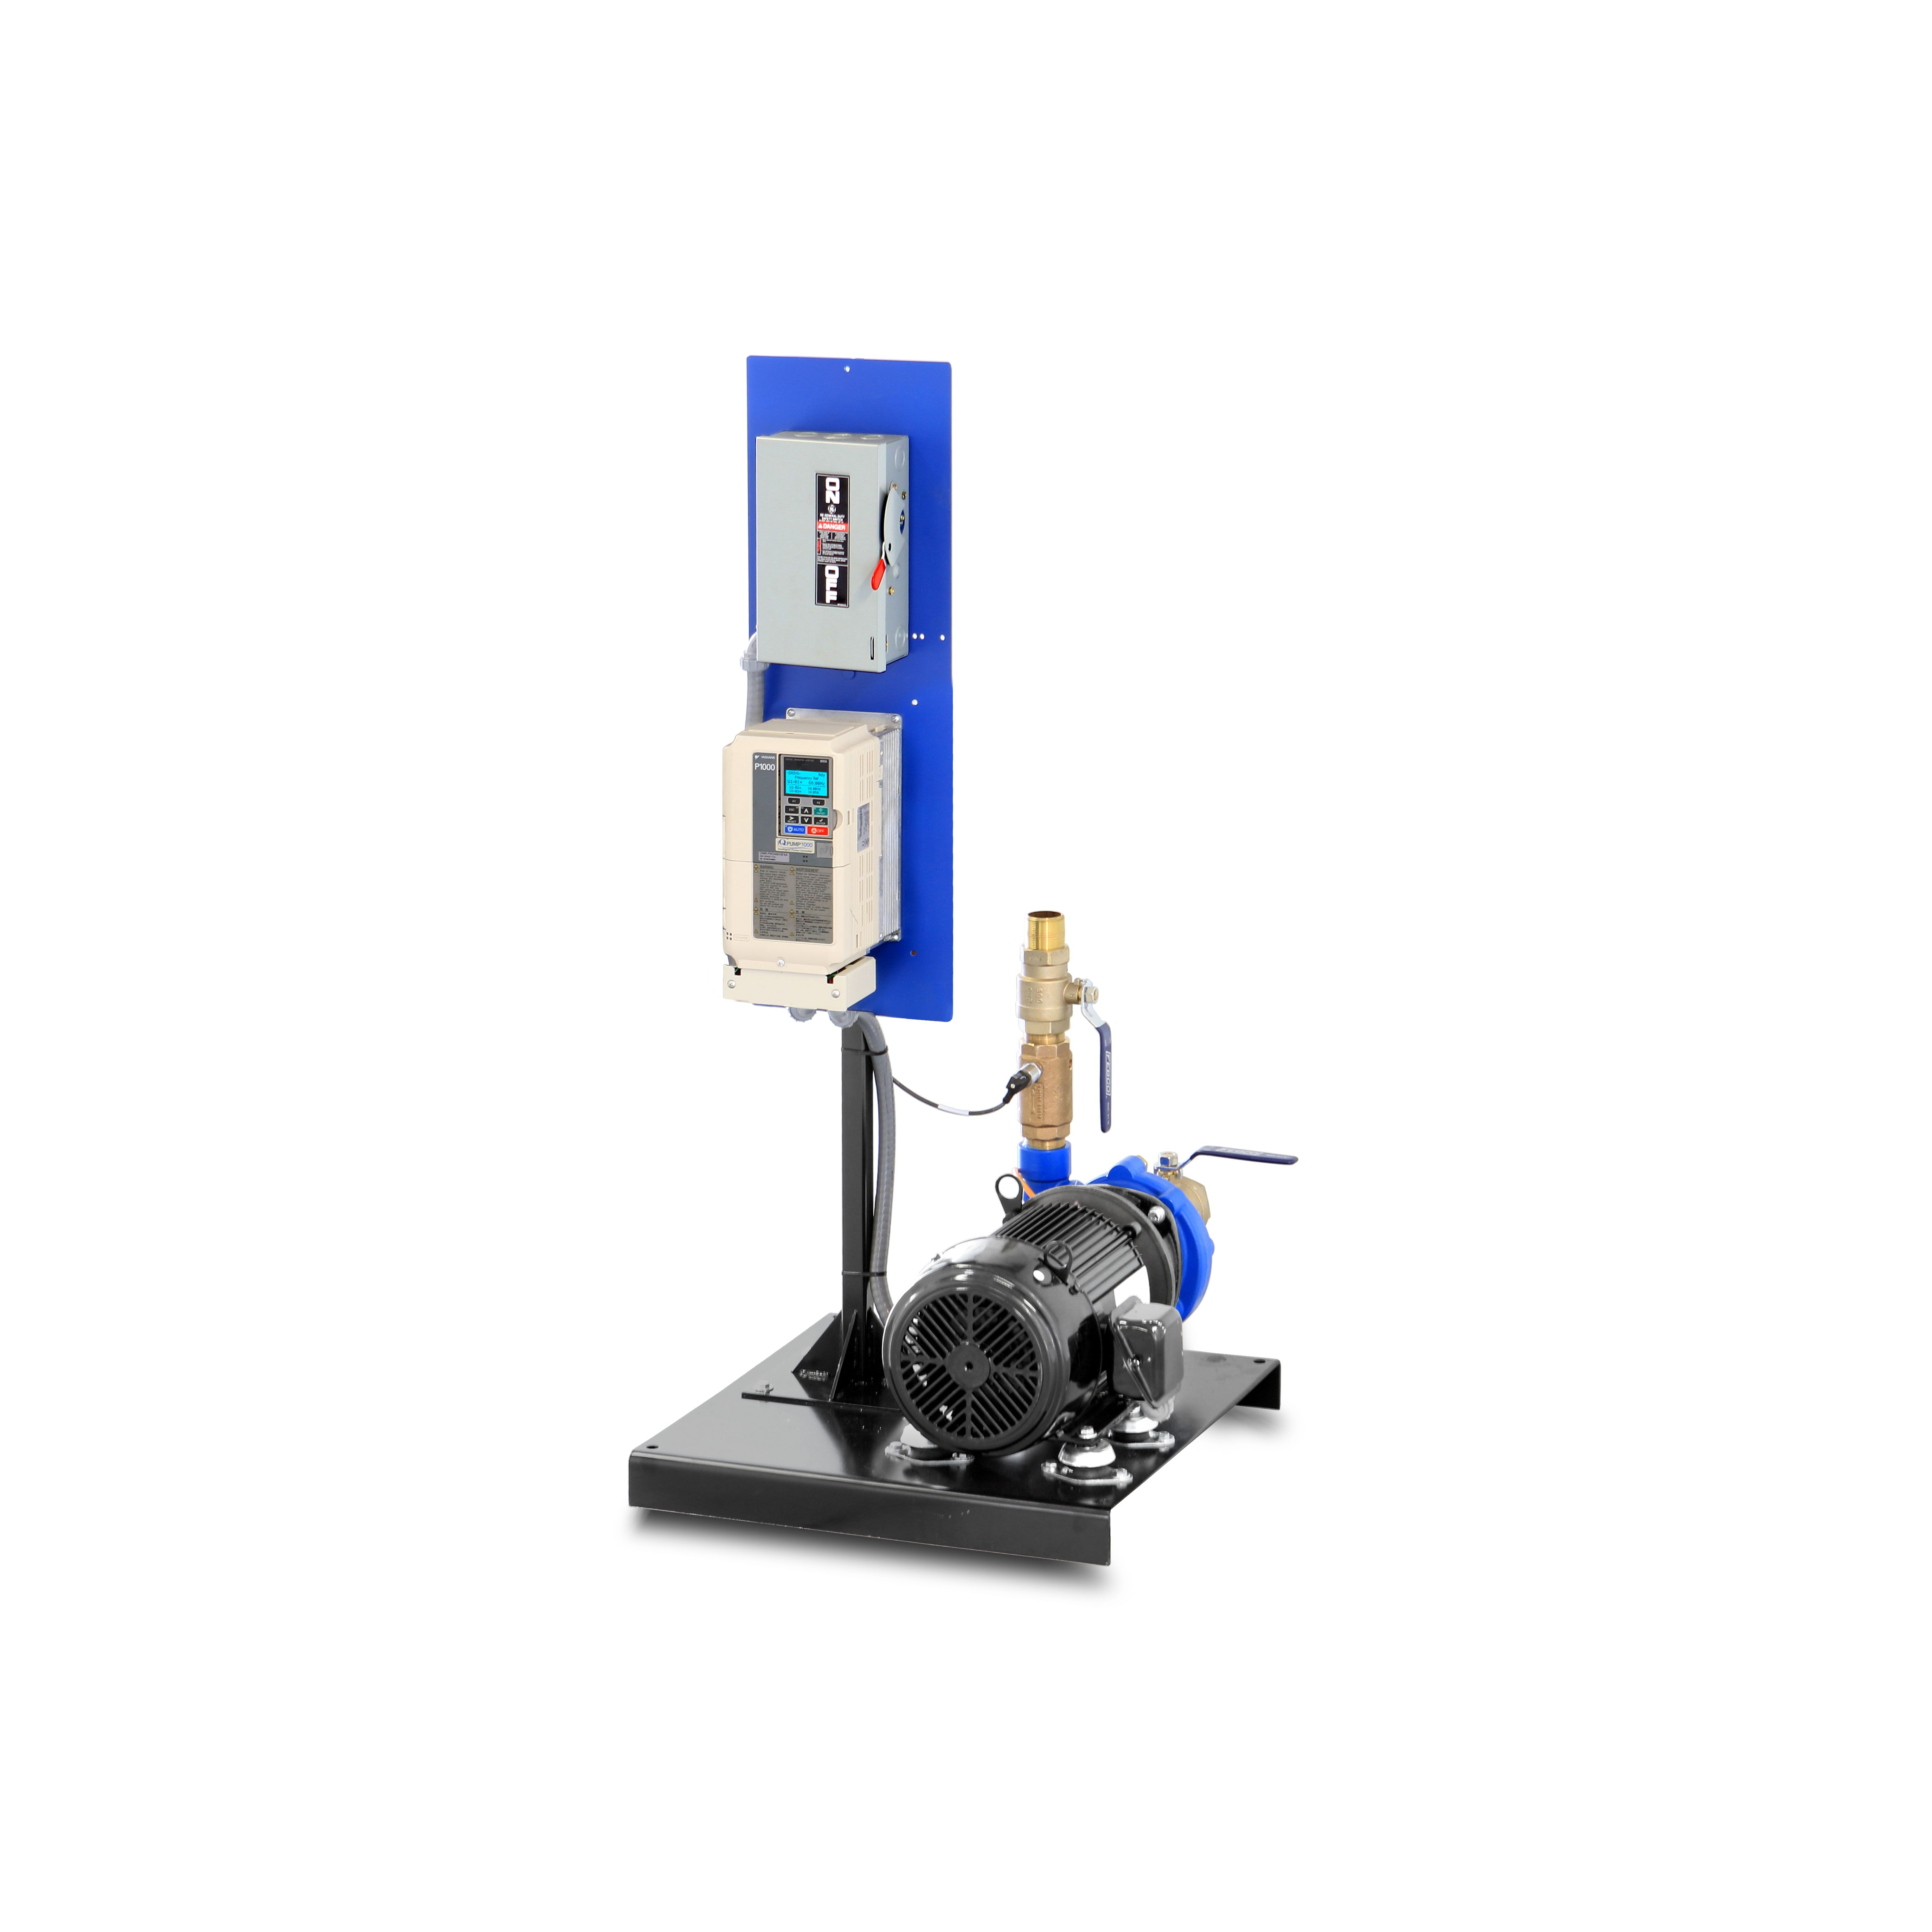 Callaghan Pumps And Controls Inc Deliver Equipment To Contractors Or Owners For Water Pump Sales And Service Pumps Sale Nyc Shopping Pumps